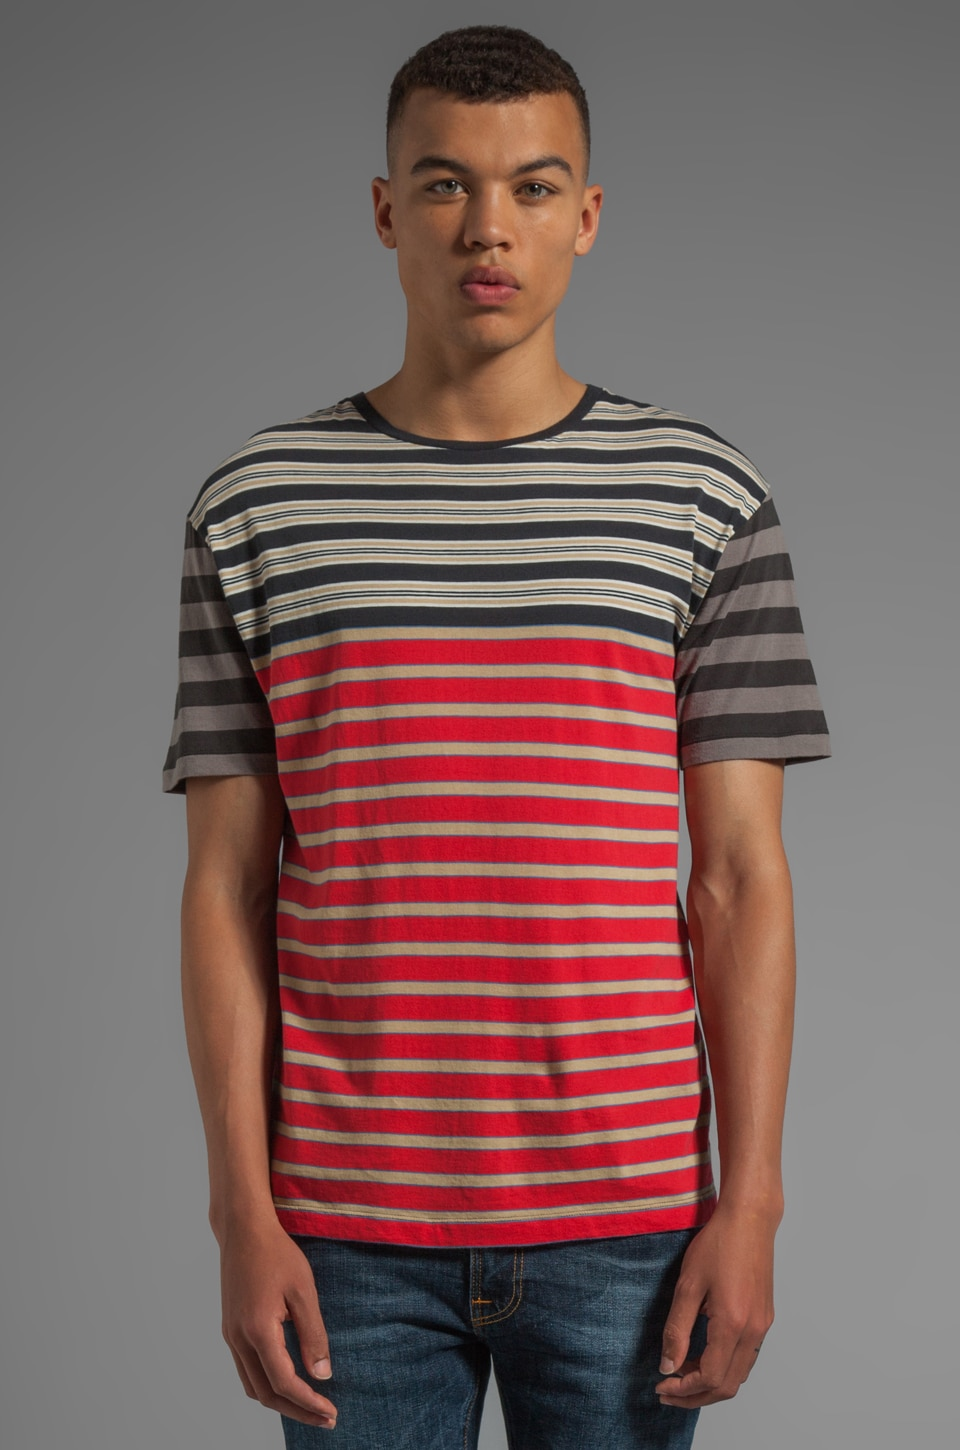 Marc by Marc Jacobs Bailey Stripe Tee in Scarlet Multi